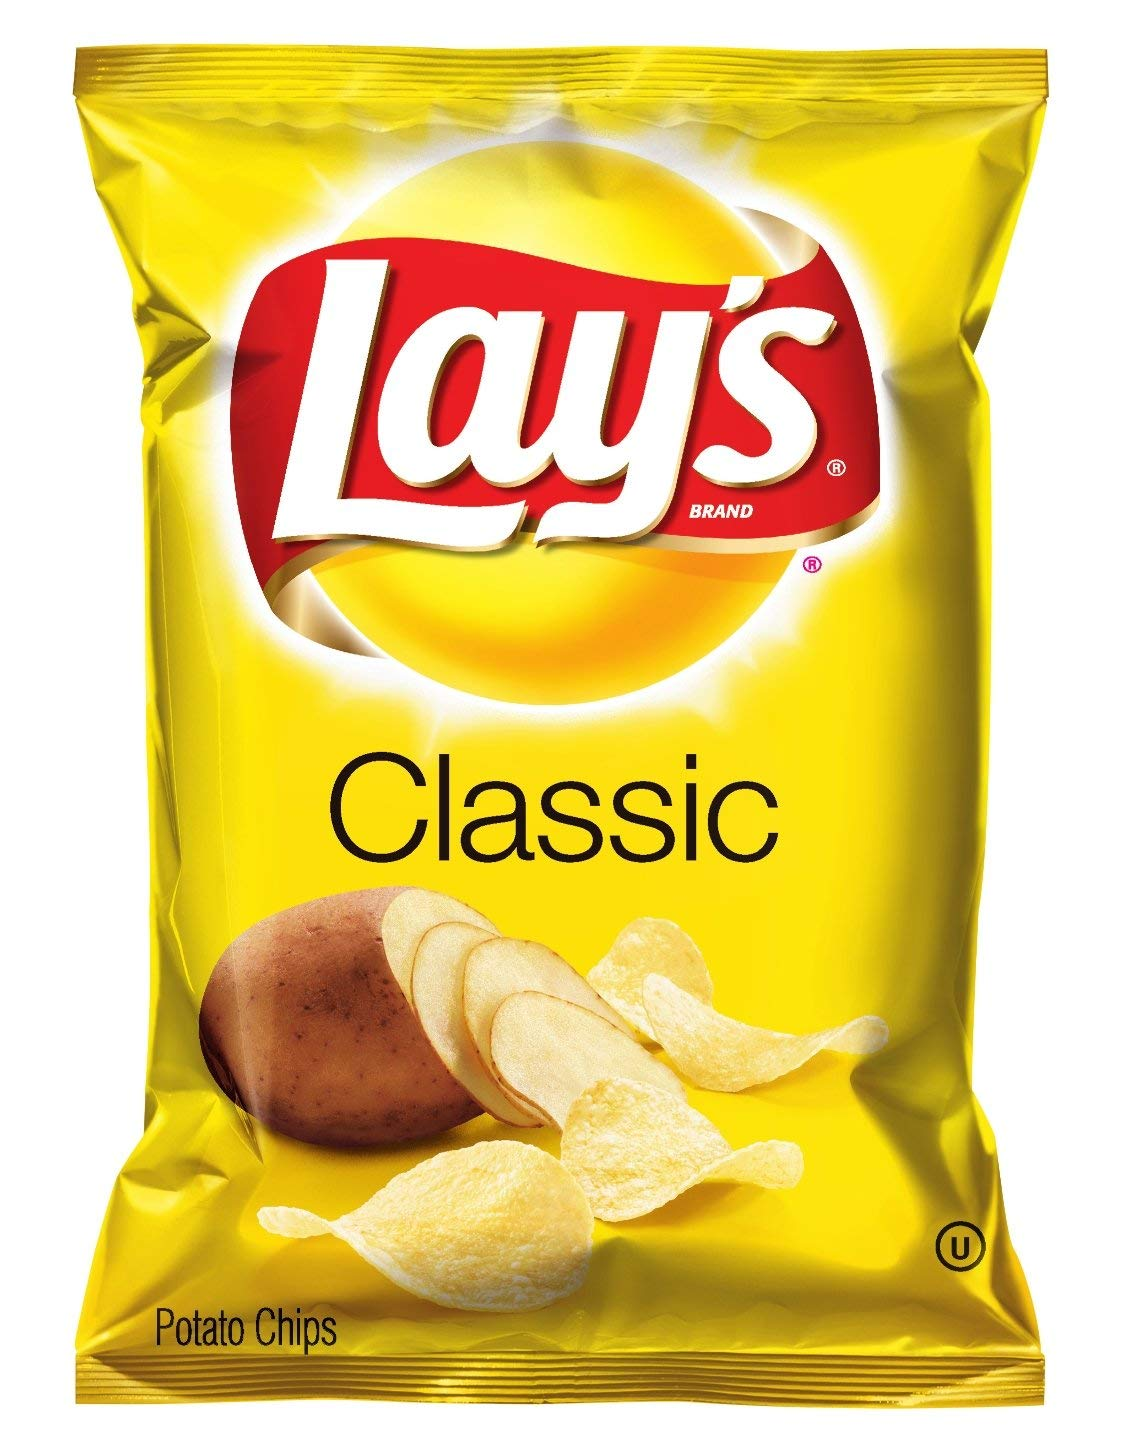 Chips clipart chip lays, Chips chip lays Transparent FREE.